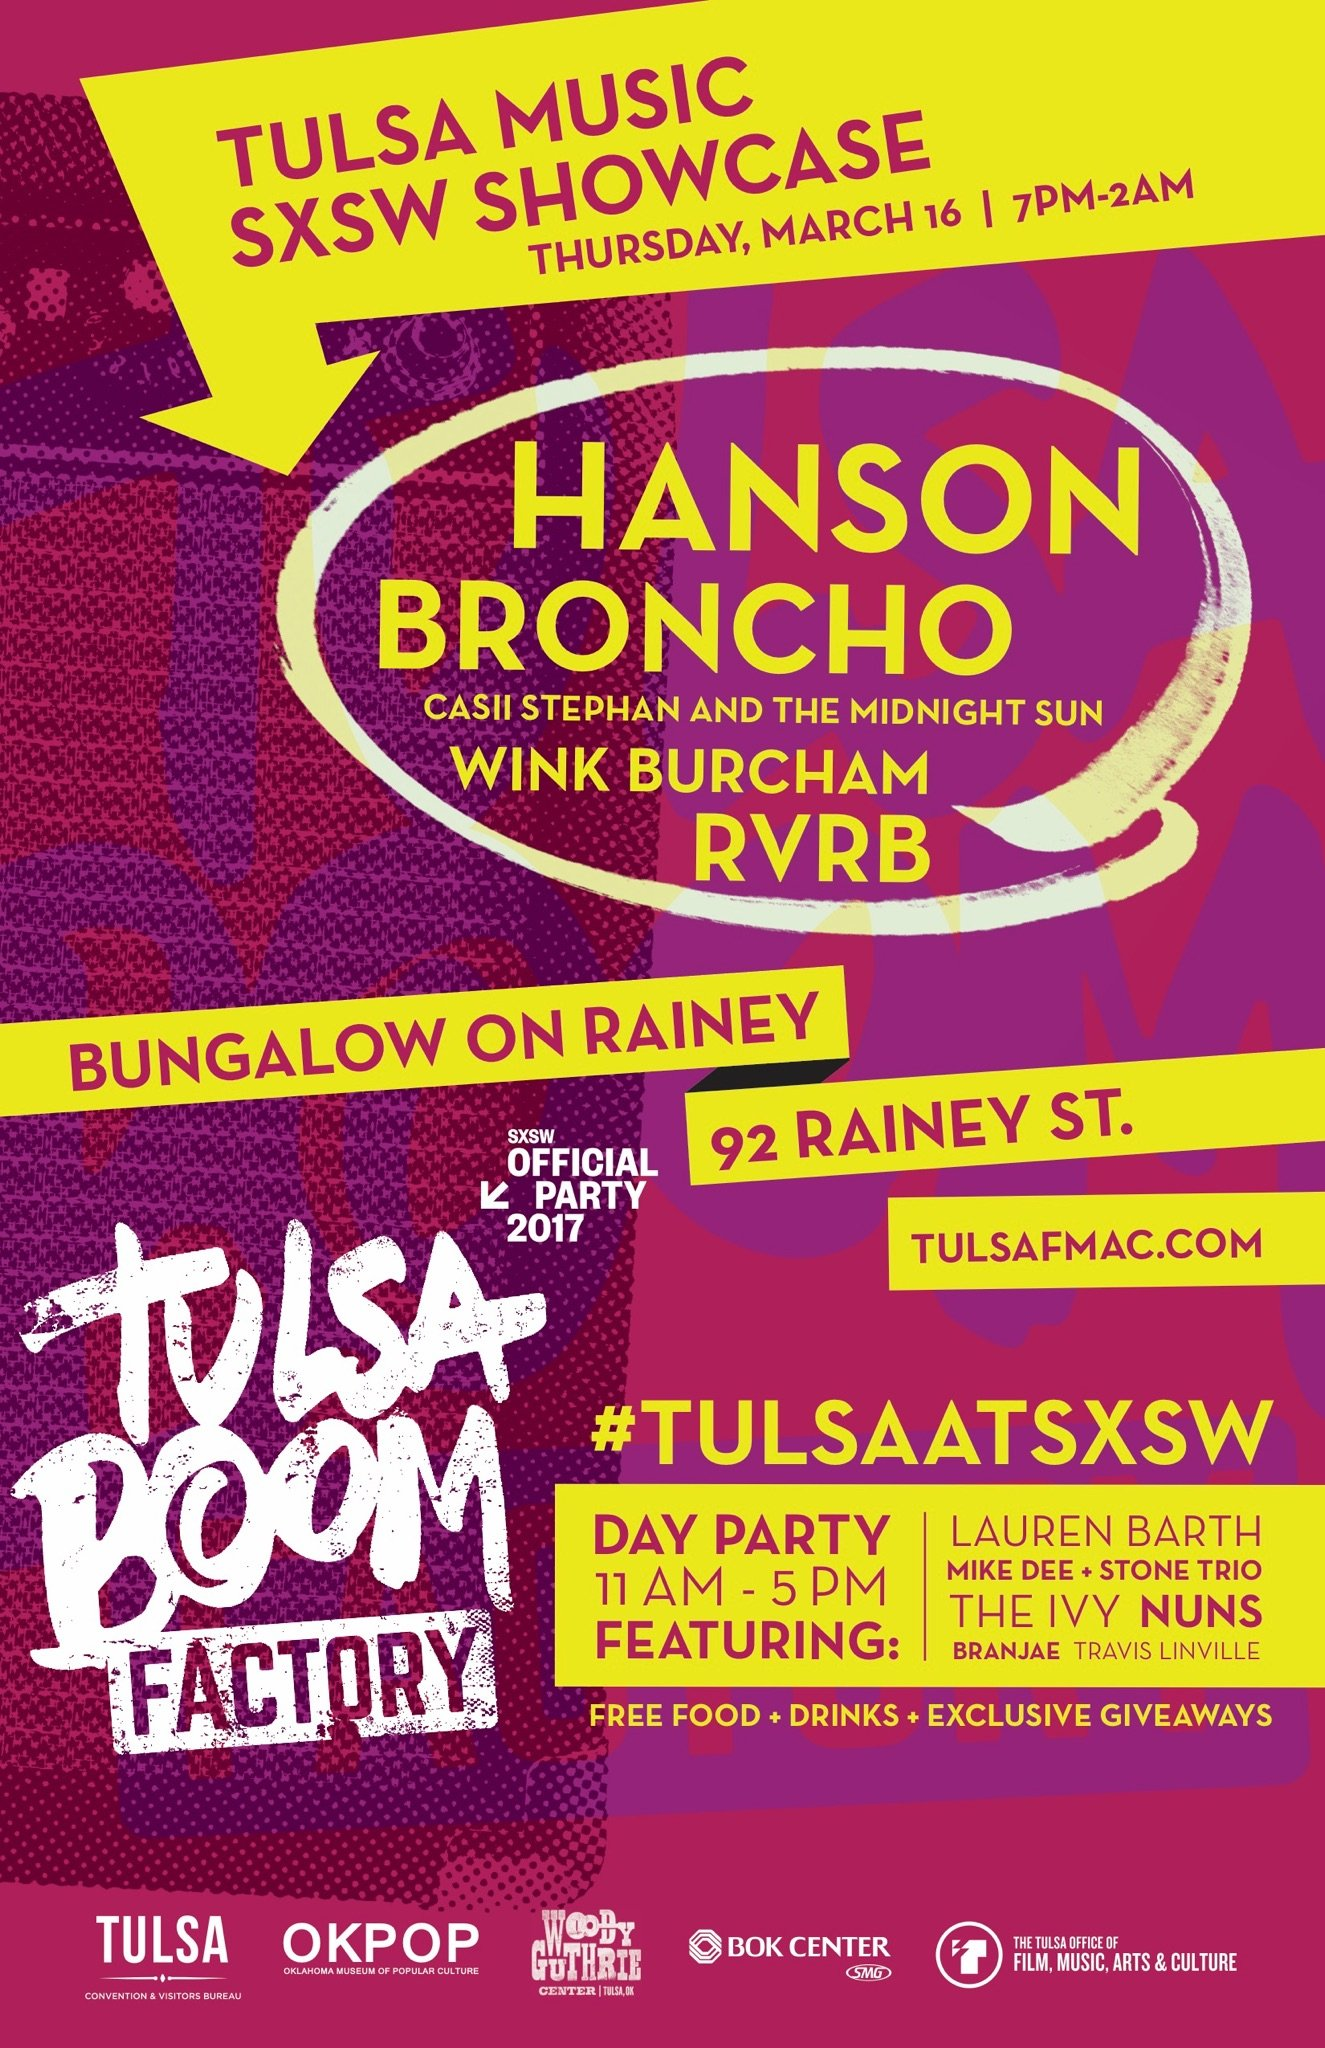 If you're at SXSW, join us at Bungalow on Rainey St tonight! https://t.co/W065iP36YX